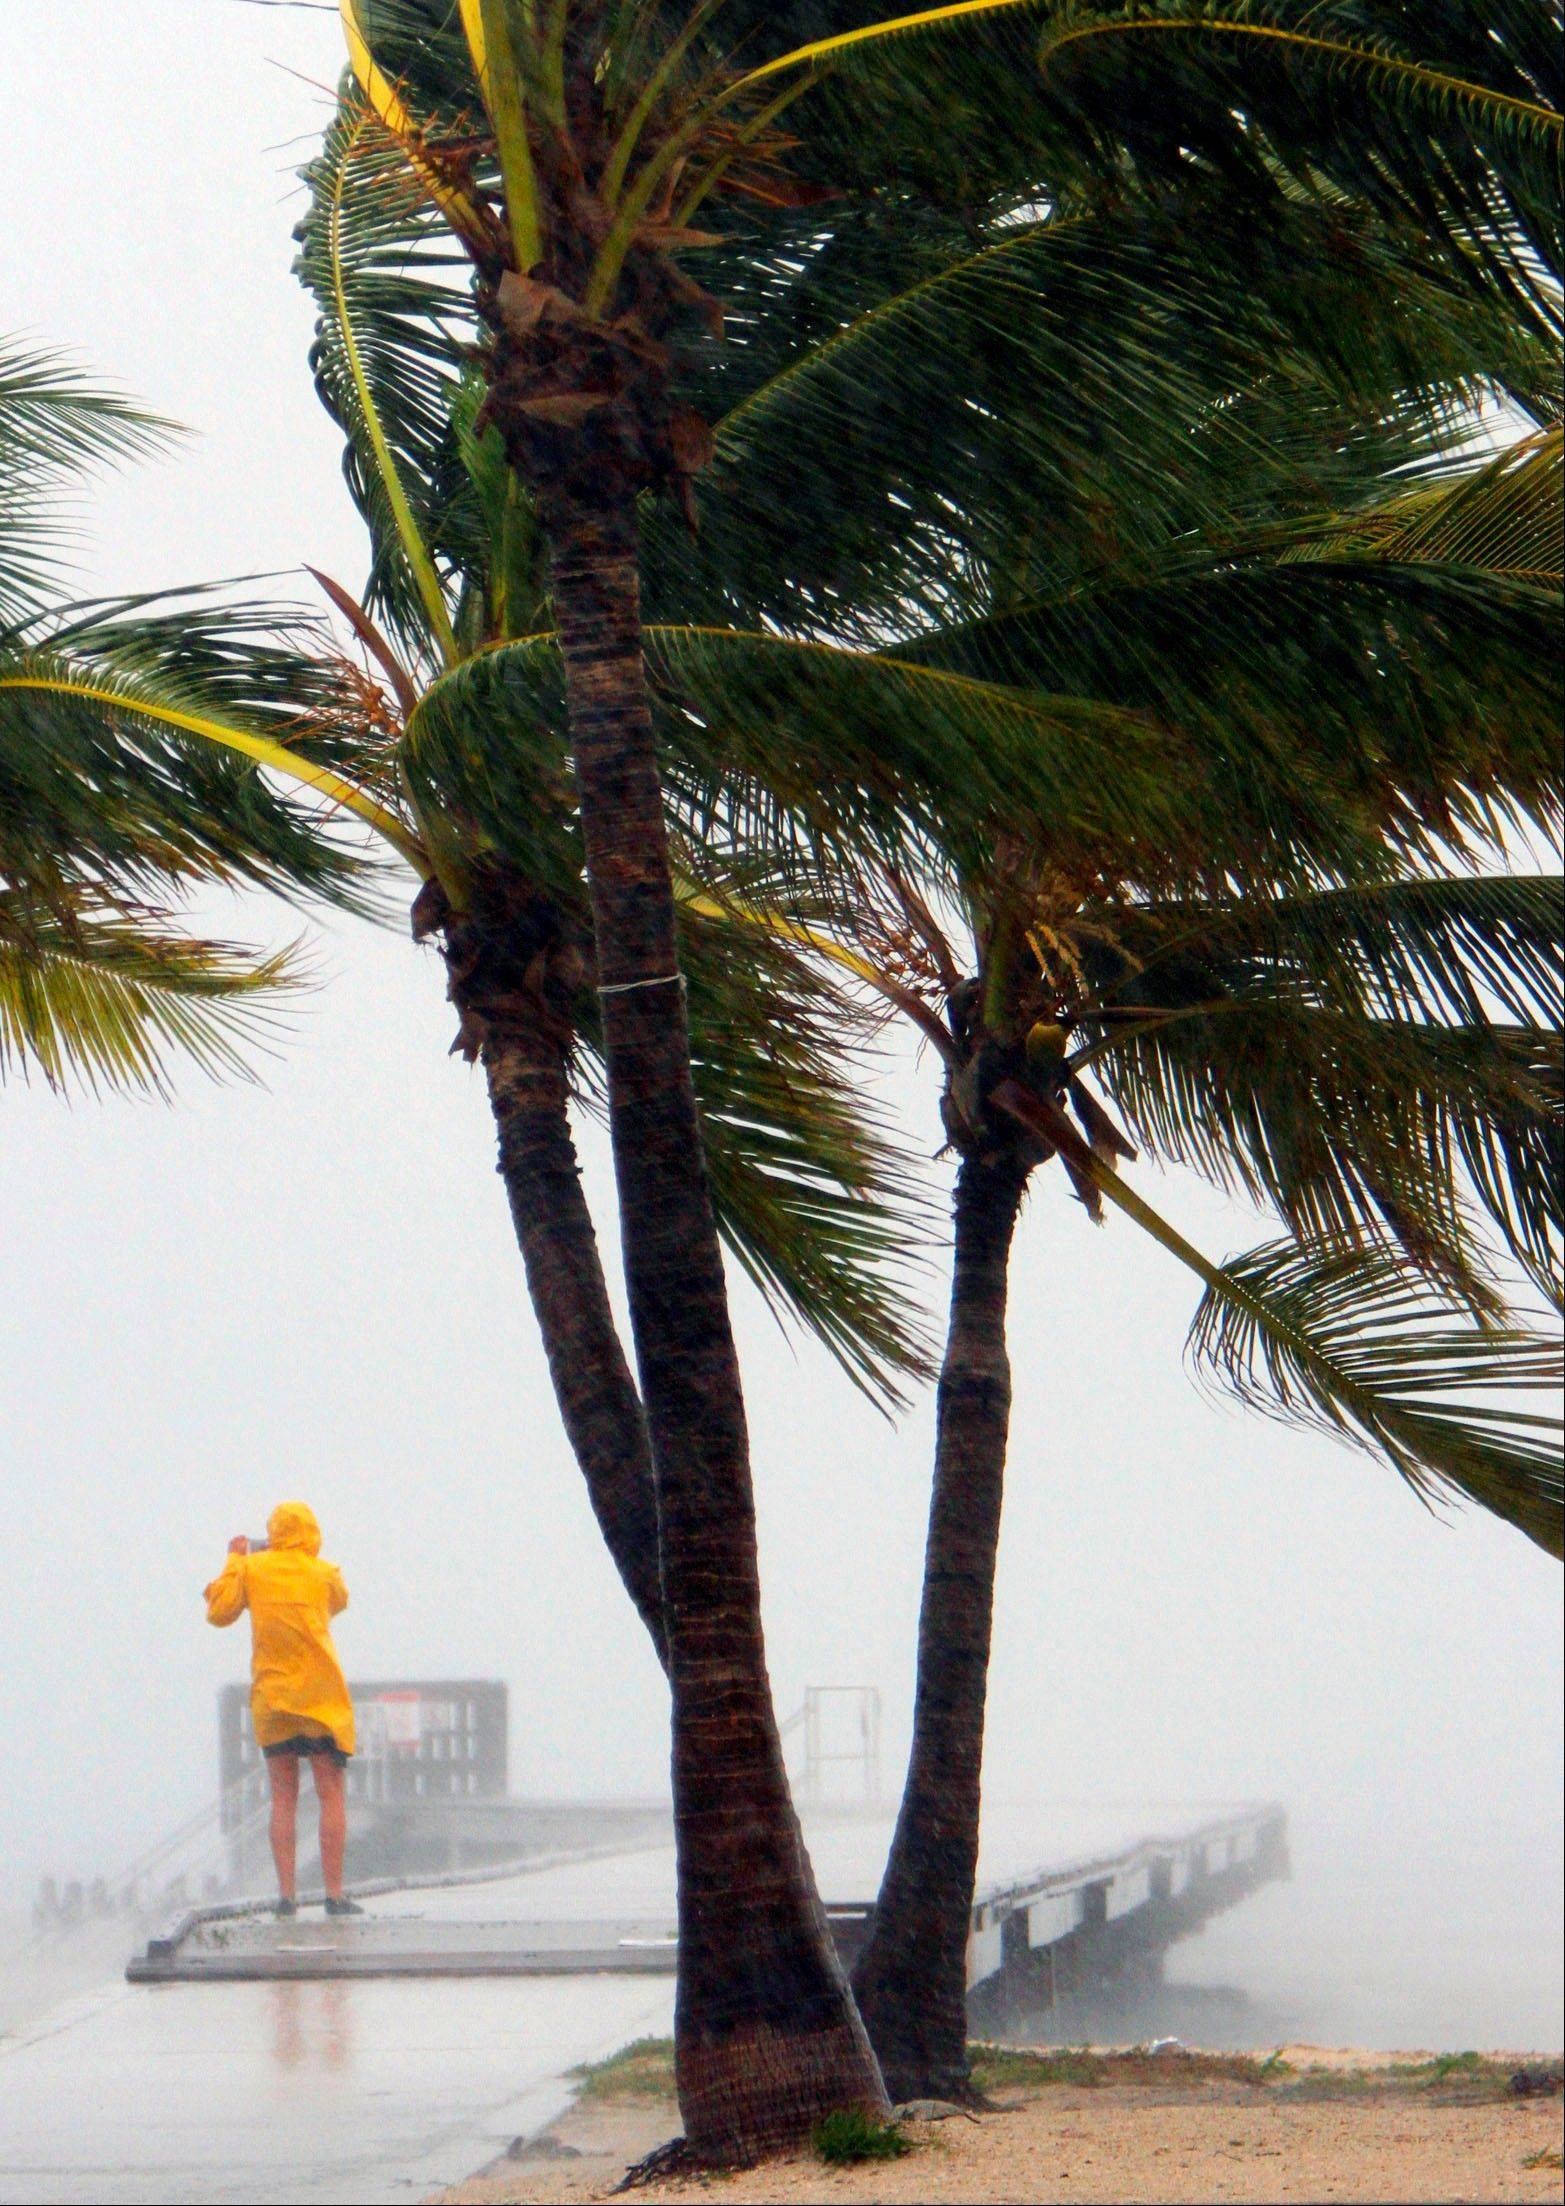 A person braves the rain at Clarence Higgs Beach in Key West, Fla., as Tropical Storm Isaac hits the area on Sunday. Isaac gained fresh muscle Sunday as it bore down on the Florida Keys, with forecasters warning it could grow into a dangerous Category 2 hurricane as it nears the northern Gulf Coast. The Republican National Convention set to start Monday will be adjourned after it's called into session and all programming scrapped until Tuesday.